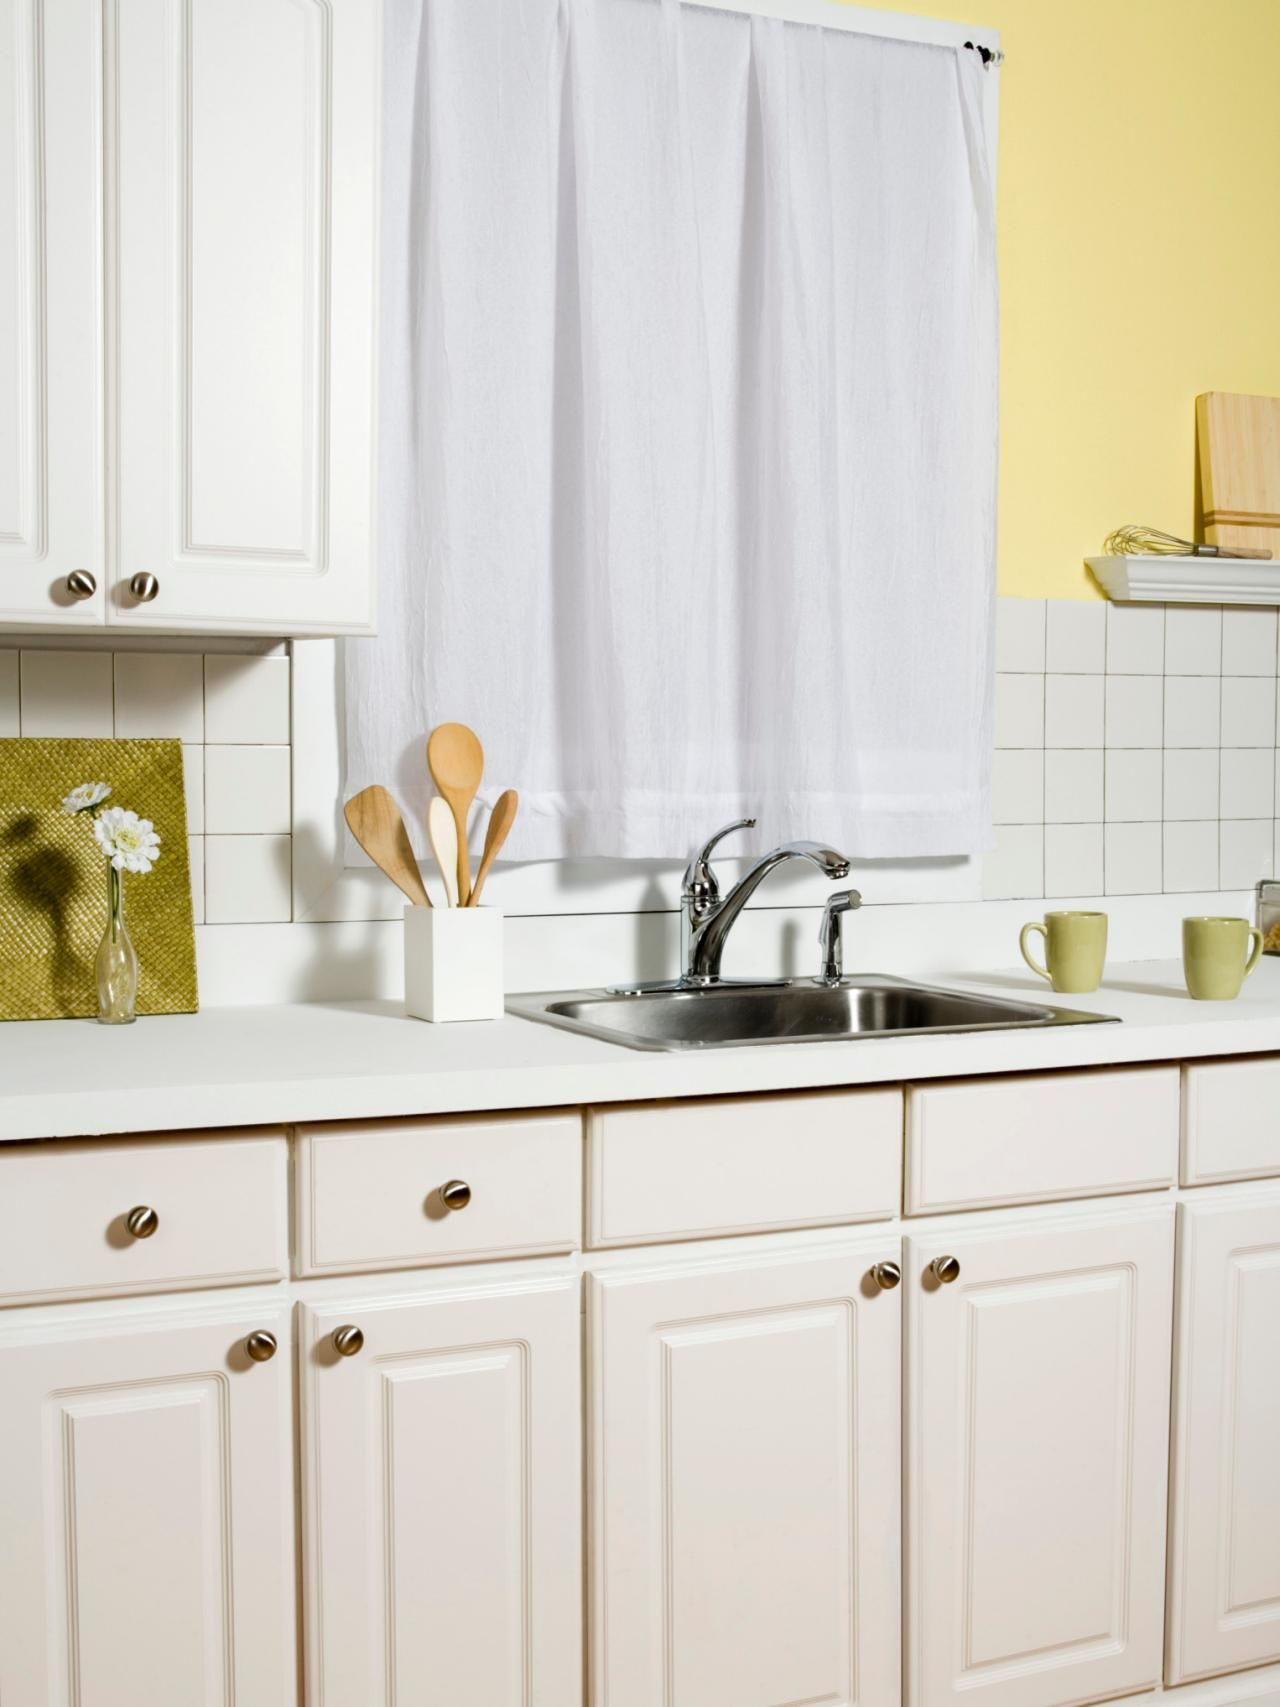 Choosing Kitchen Cabinets For A Remodel Clean Kitchen Cabinets New Kitchen Cabinets Wood Kitchen Cabinets